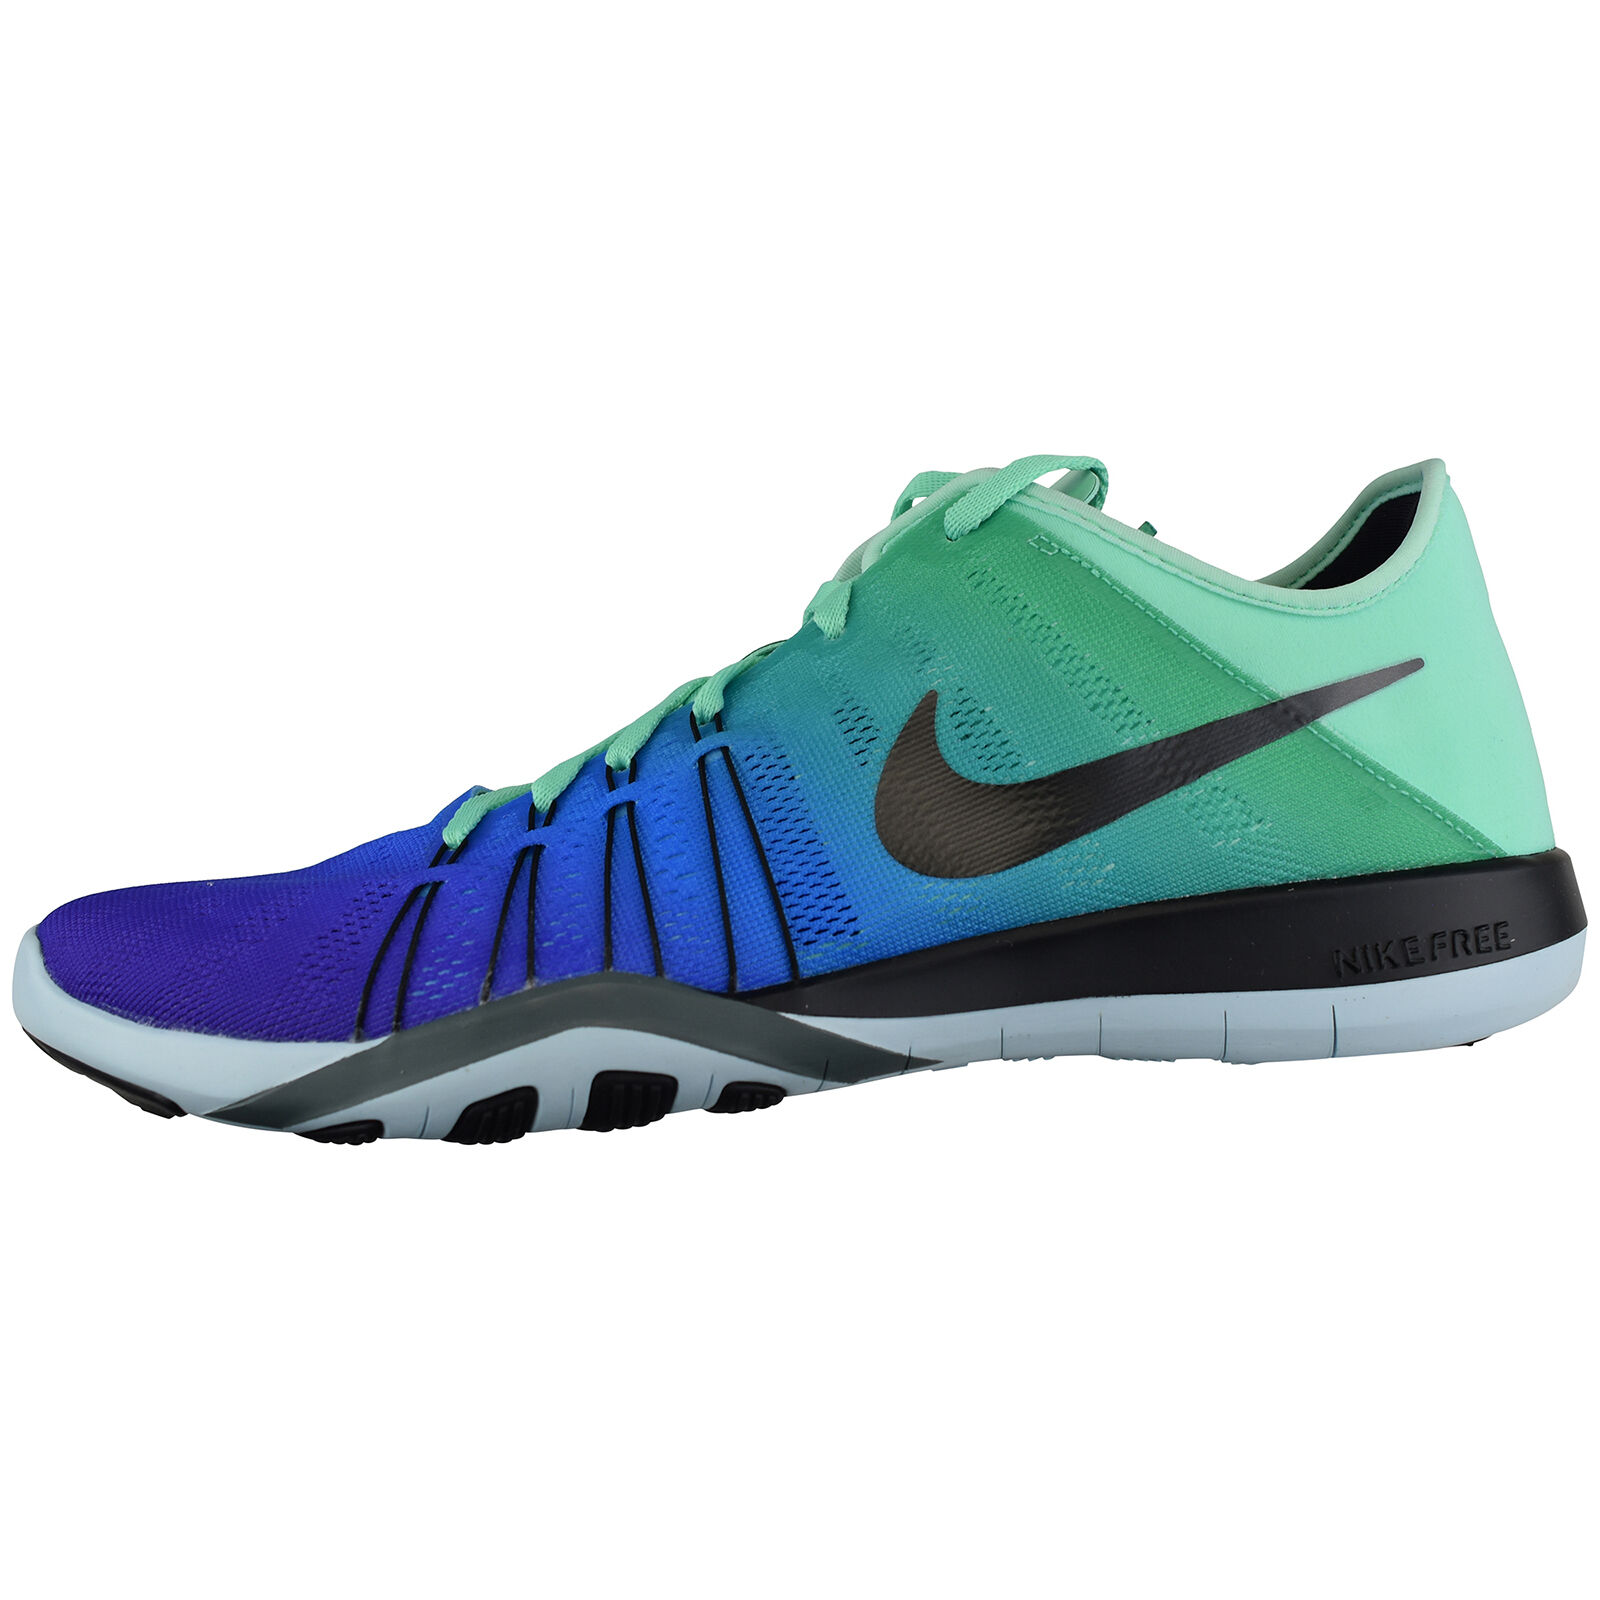 Wmns Nike Free Tr 6 Spctrm 849804-300 Lifestyle Running shoes Run Casual